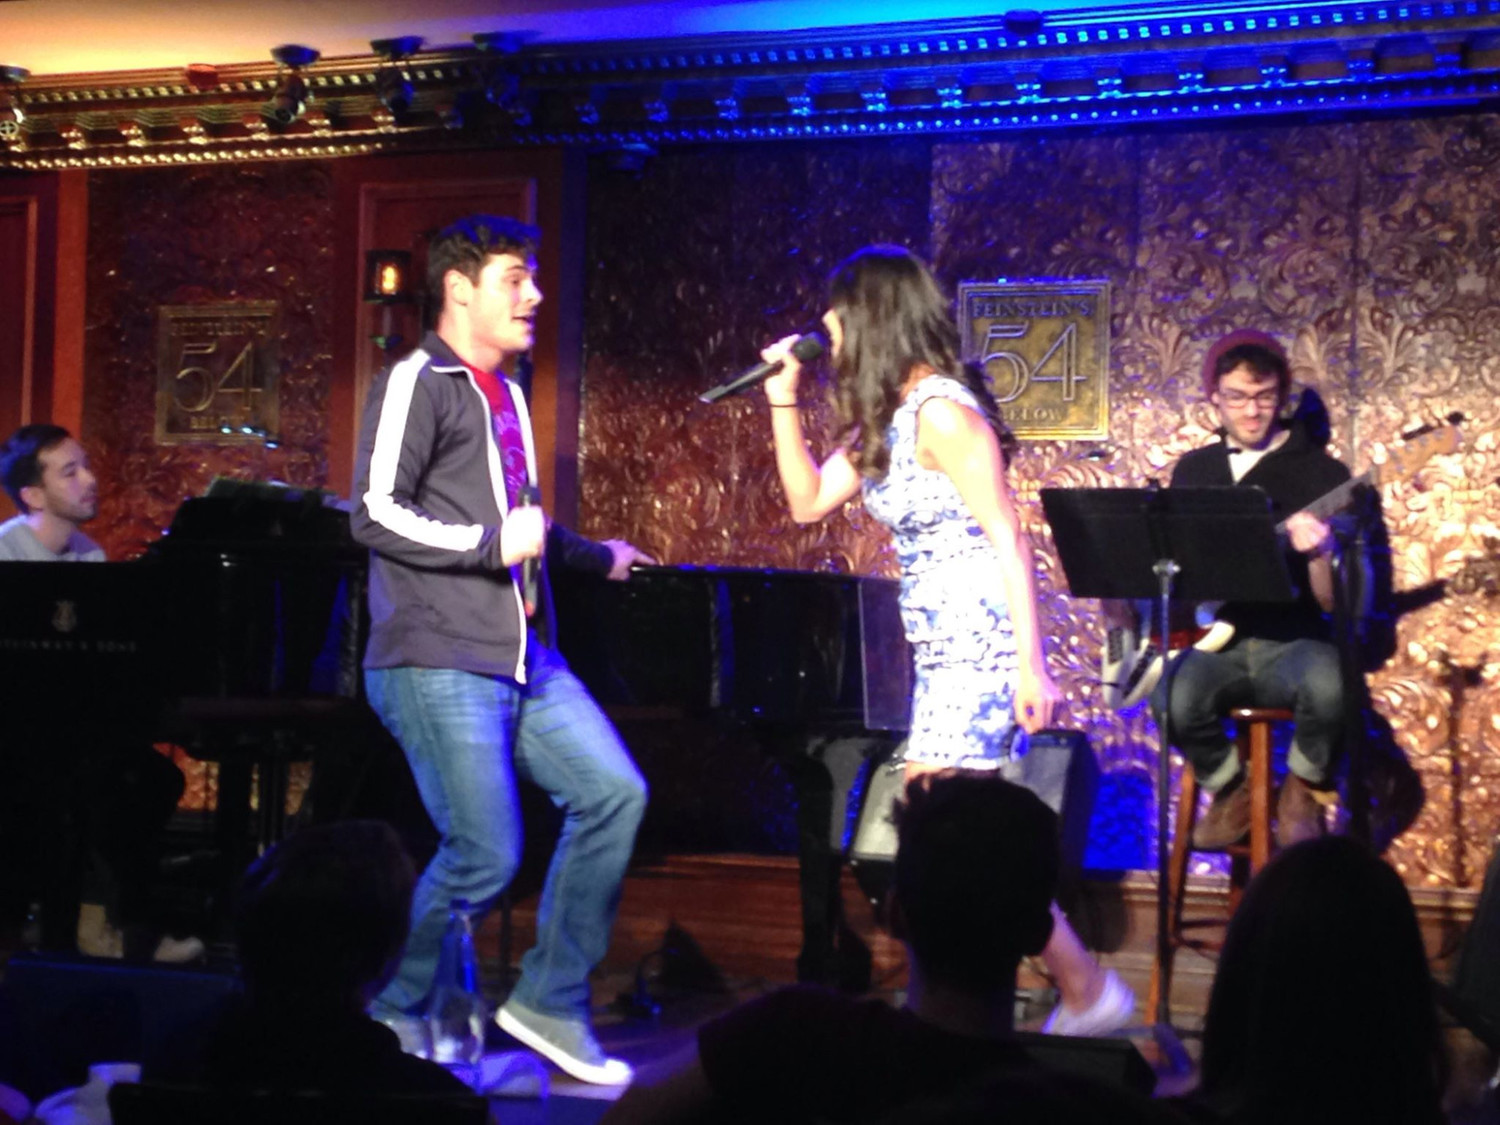 BWW Review: Everyone Bopped To the Top at '54 SINGS THE HIGH SCHOOL MUSICAL TRILOGY' at Feinstein's/54 Below